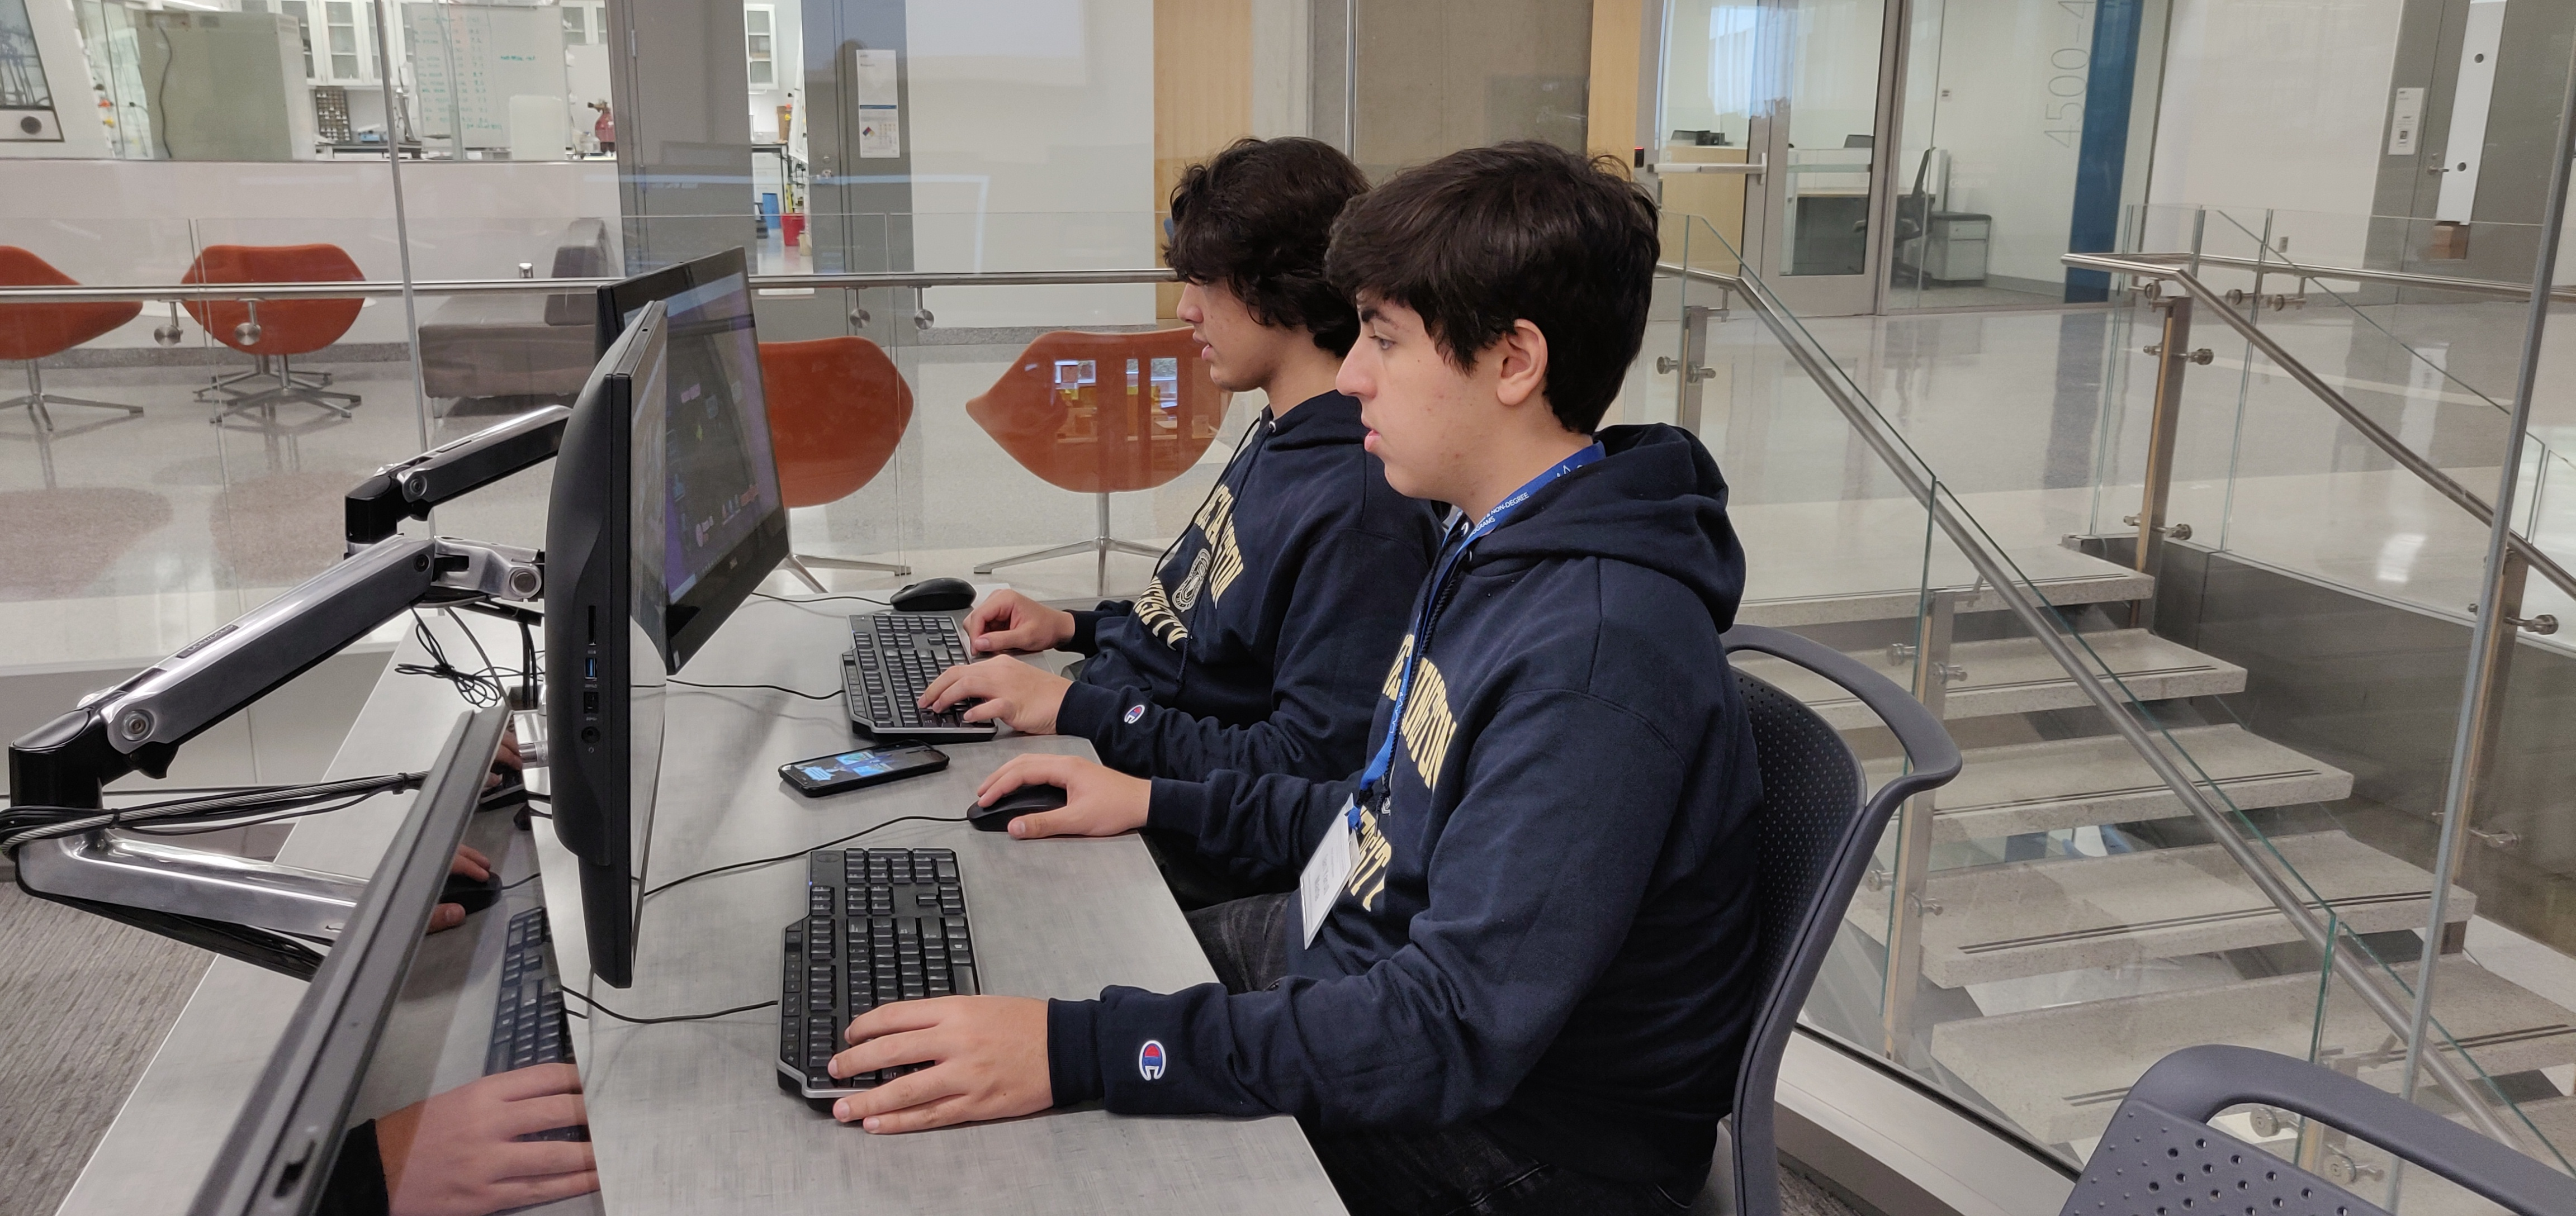 Students at a computer typing computer code